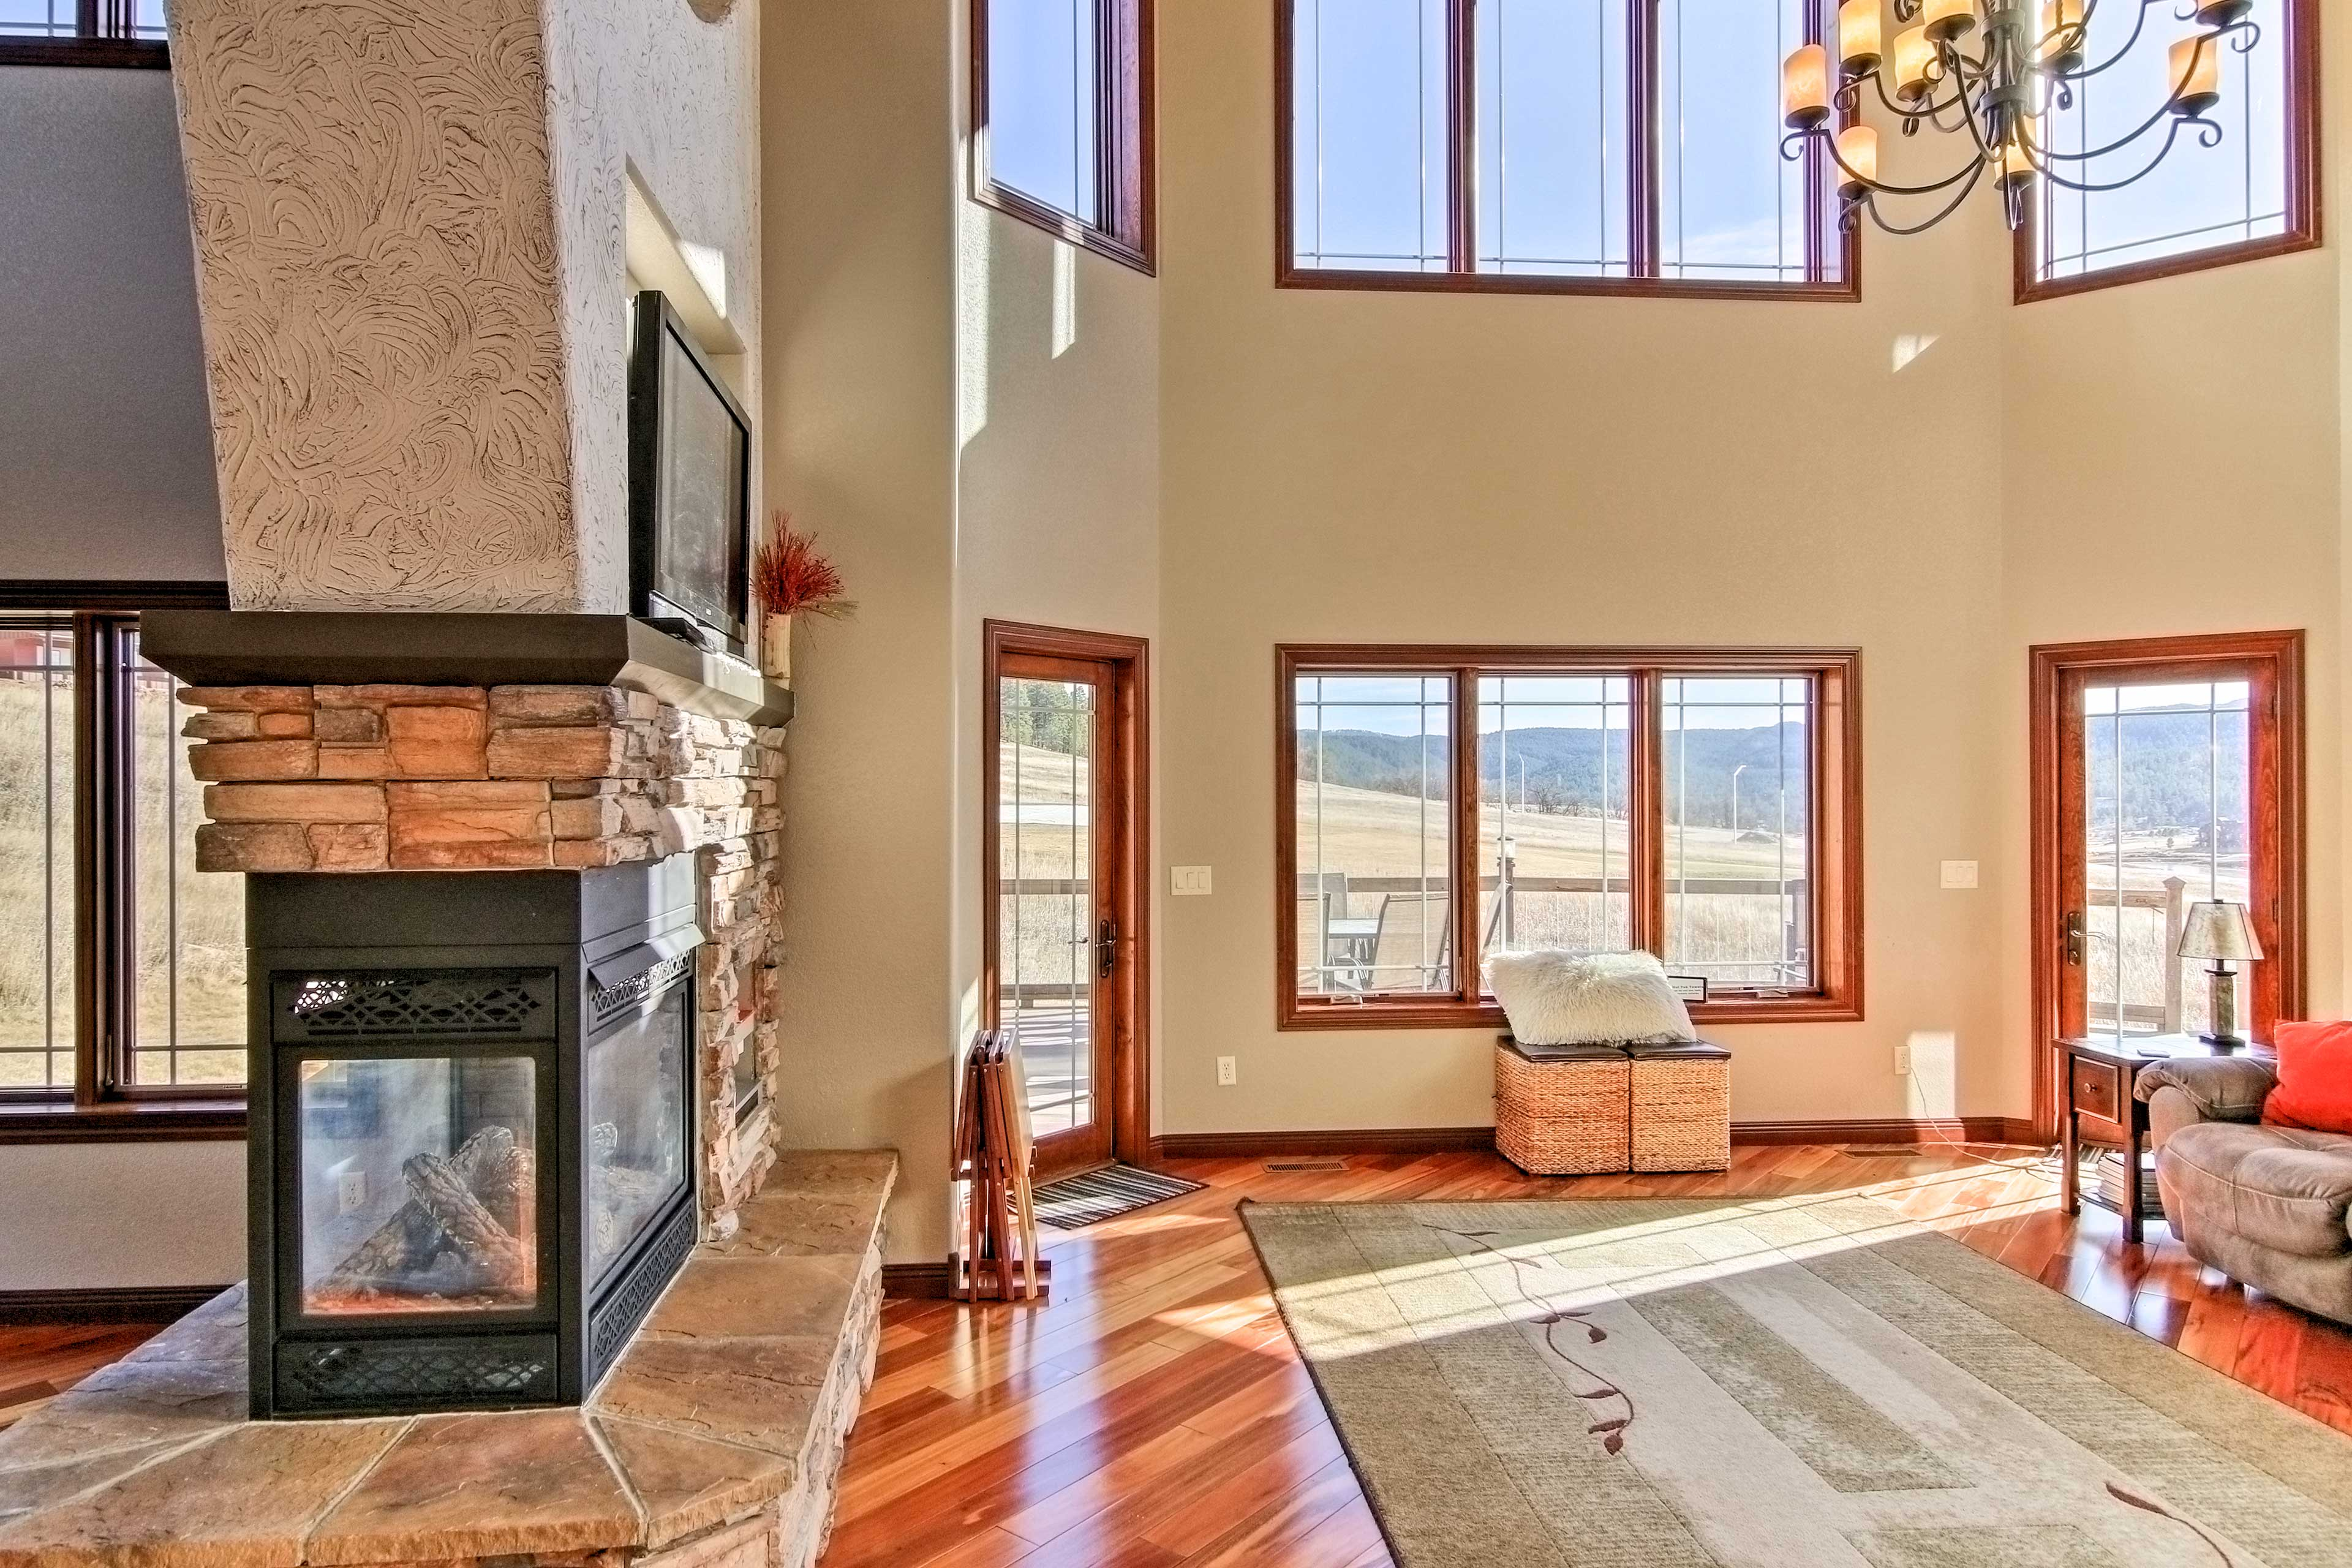 Look out to stunning views through the large picture windows.